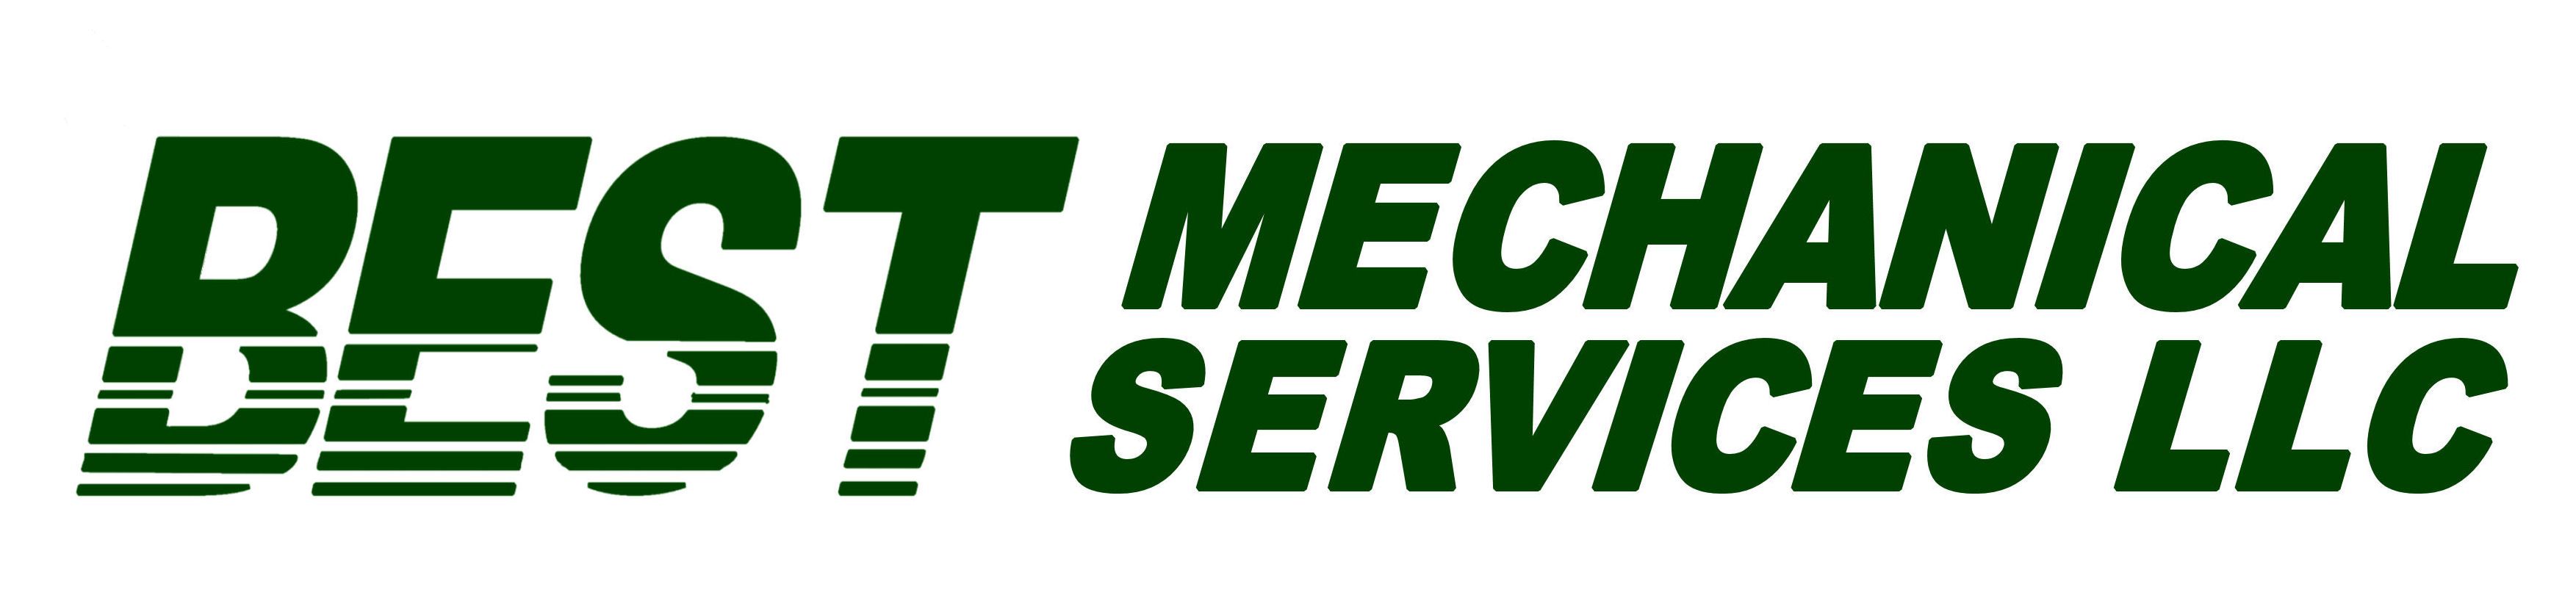 Best Mechanical Services, LLC Logo